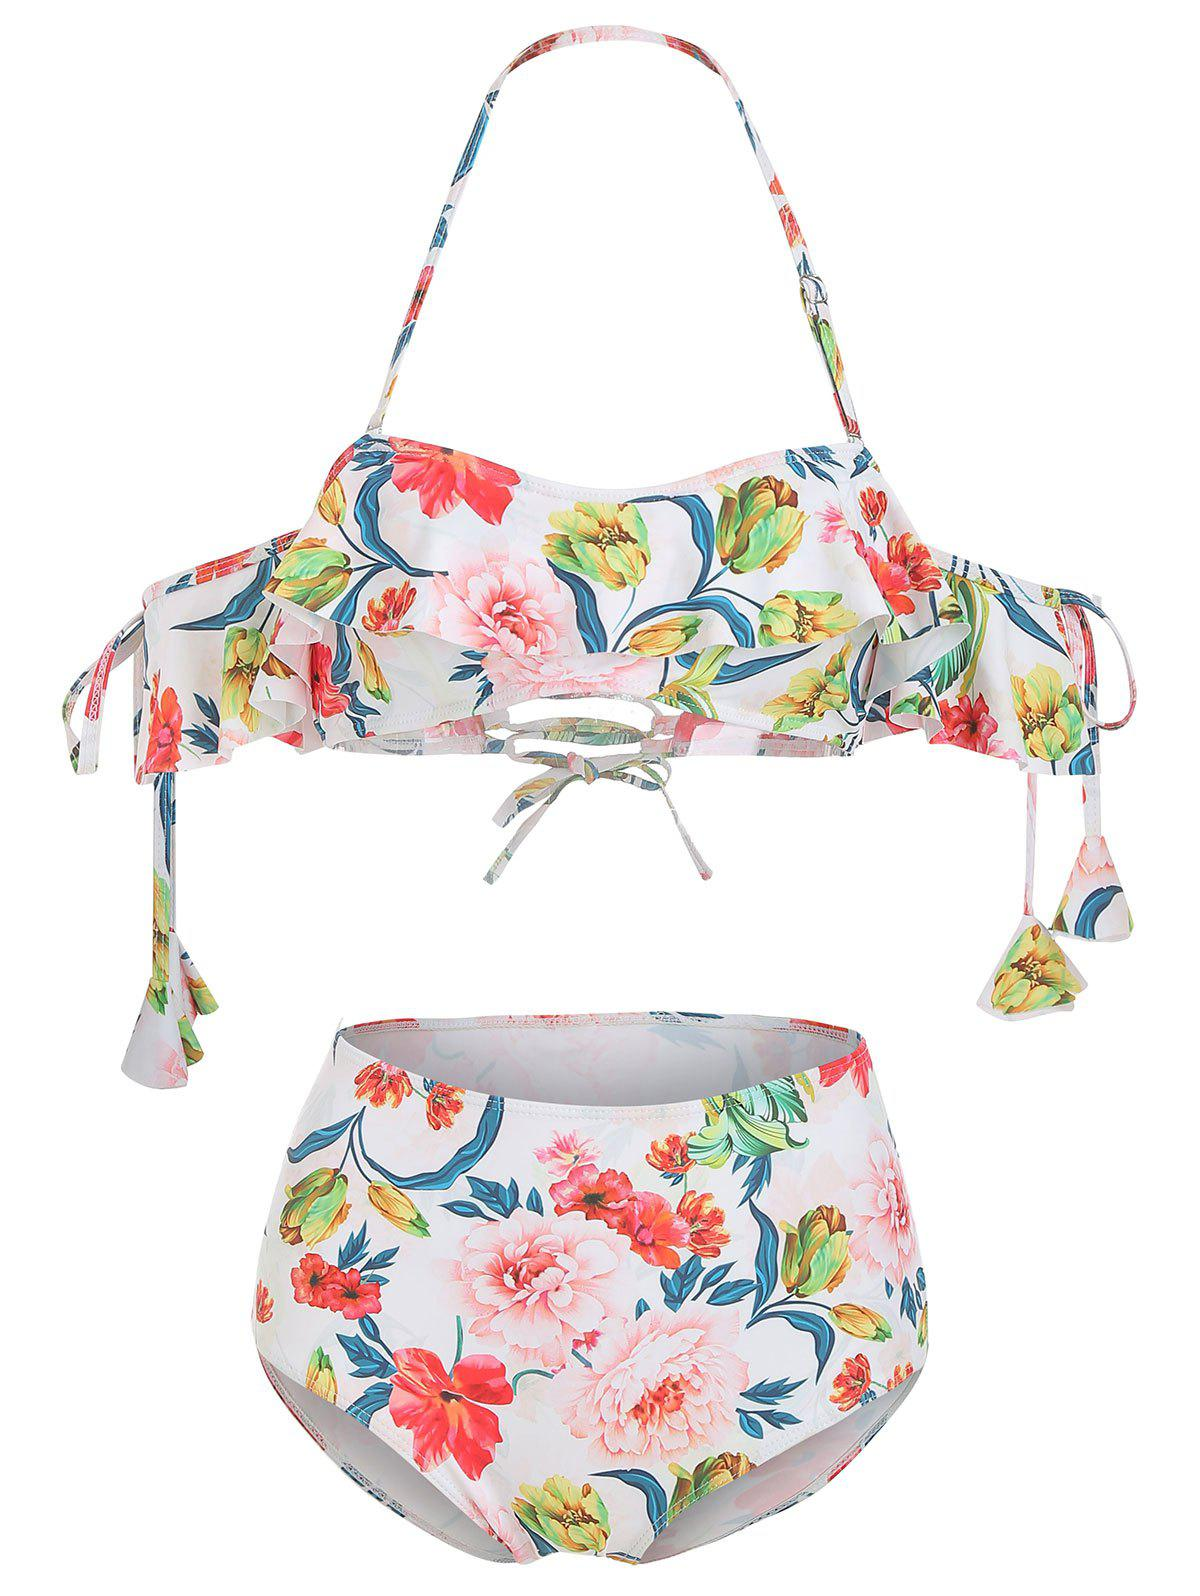 Off Shoulder Floral Ruffled Lace Up Bikini Set - multicolor XL